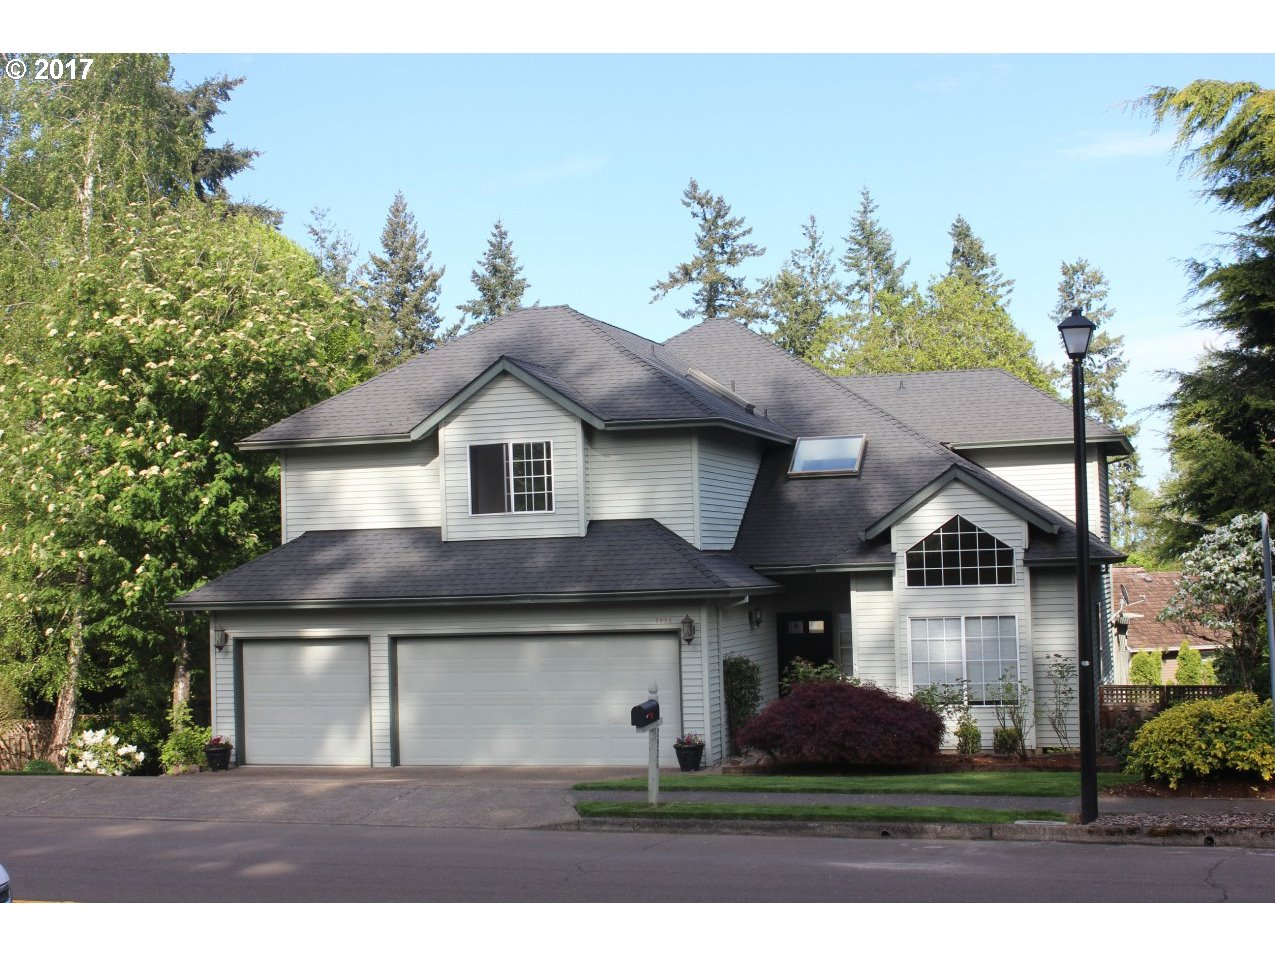 2926 CARRIAGE WAY, West Linn, OR 97068